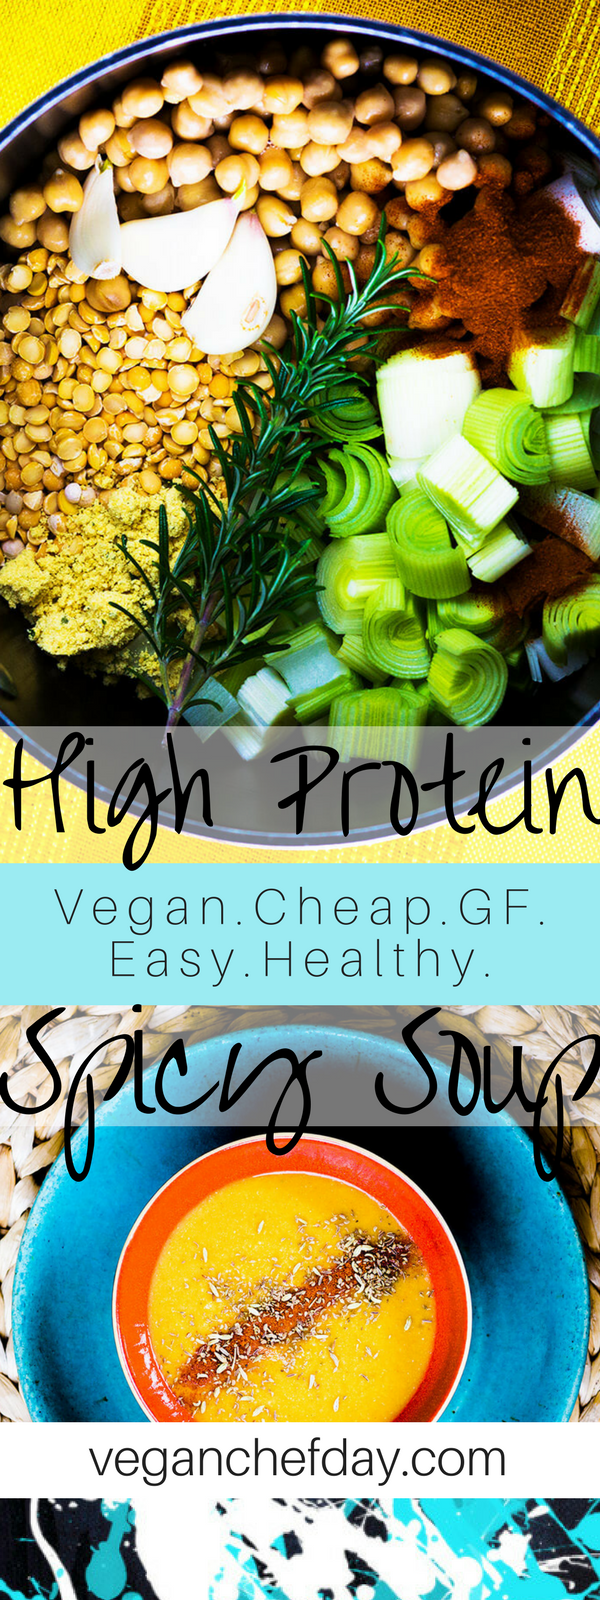 HIGH PROTEIN SOUP pin.png